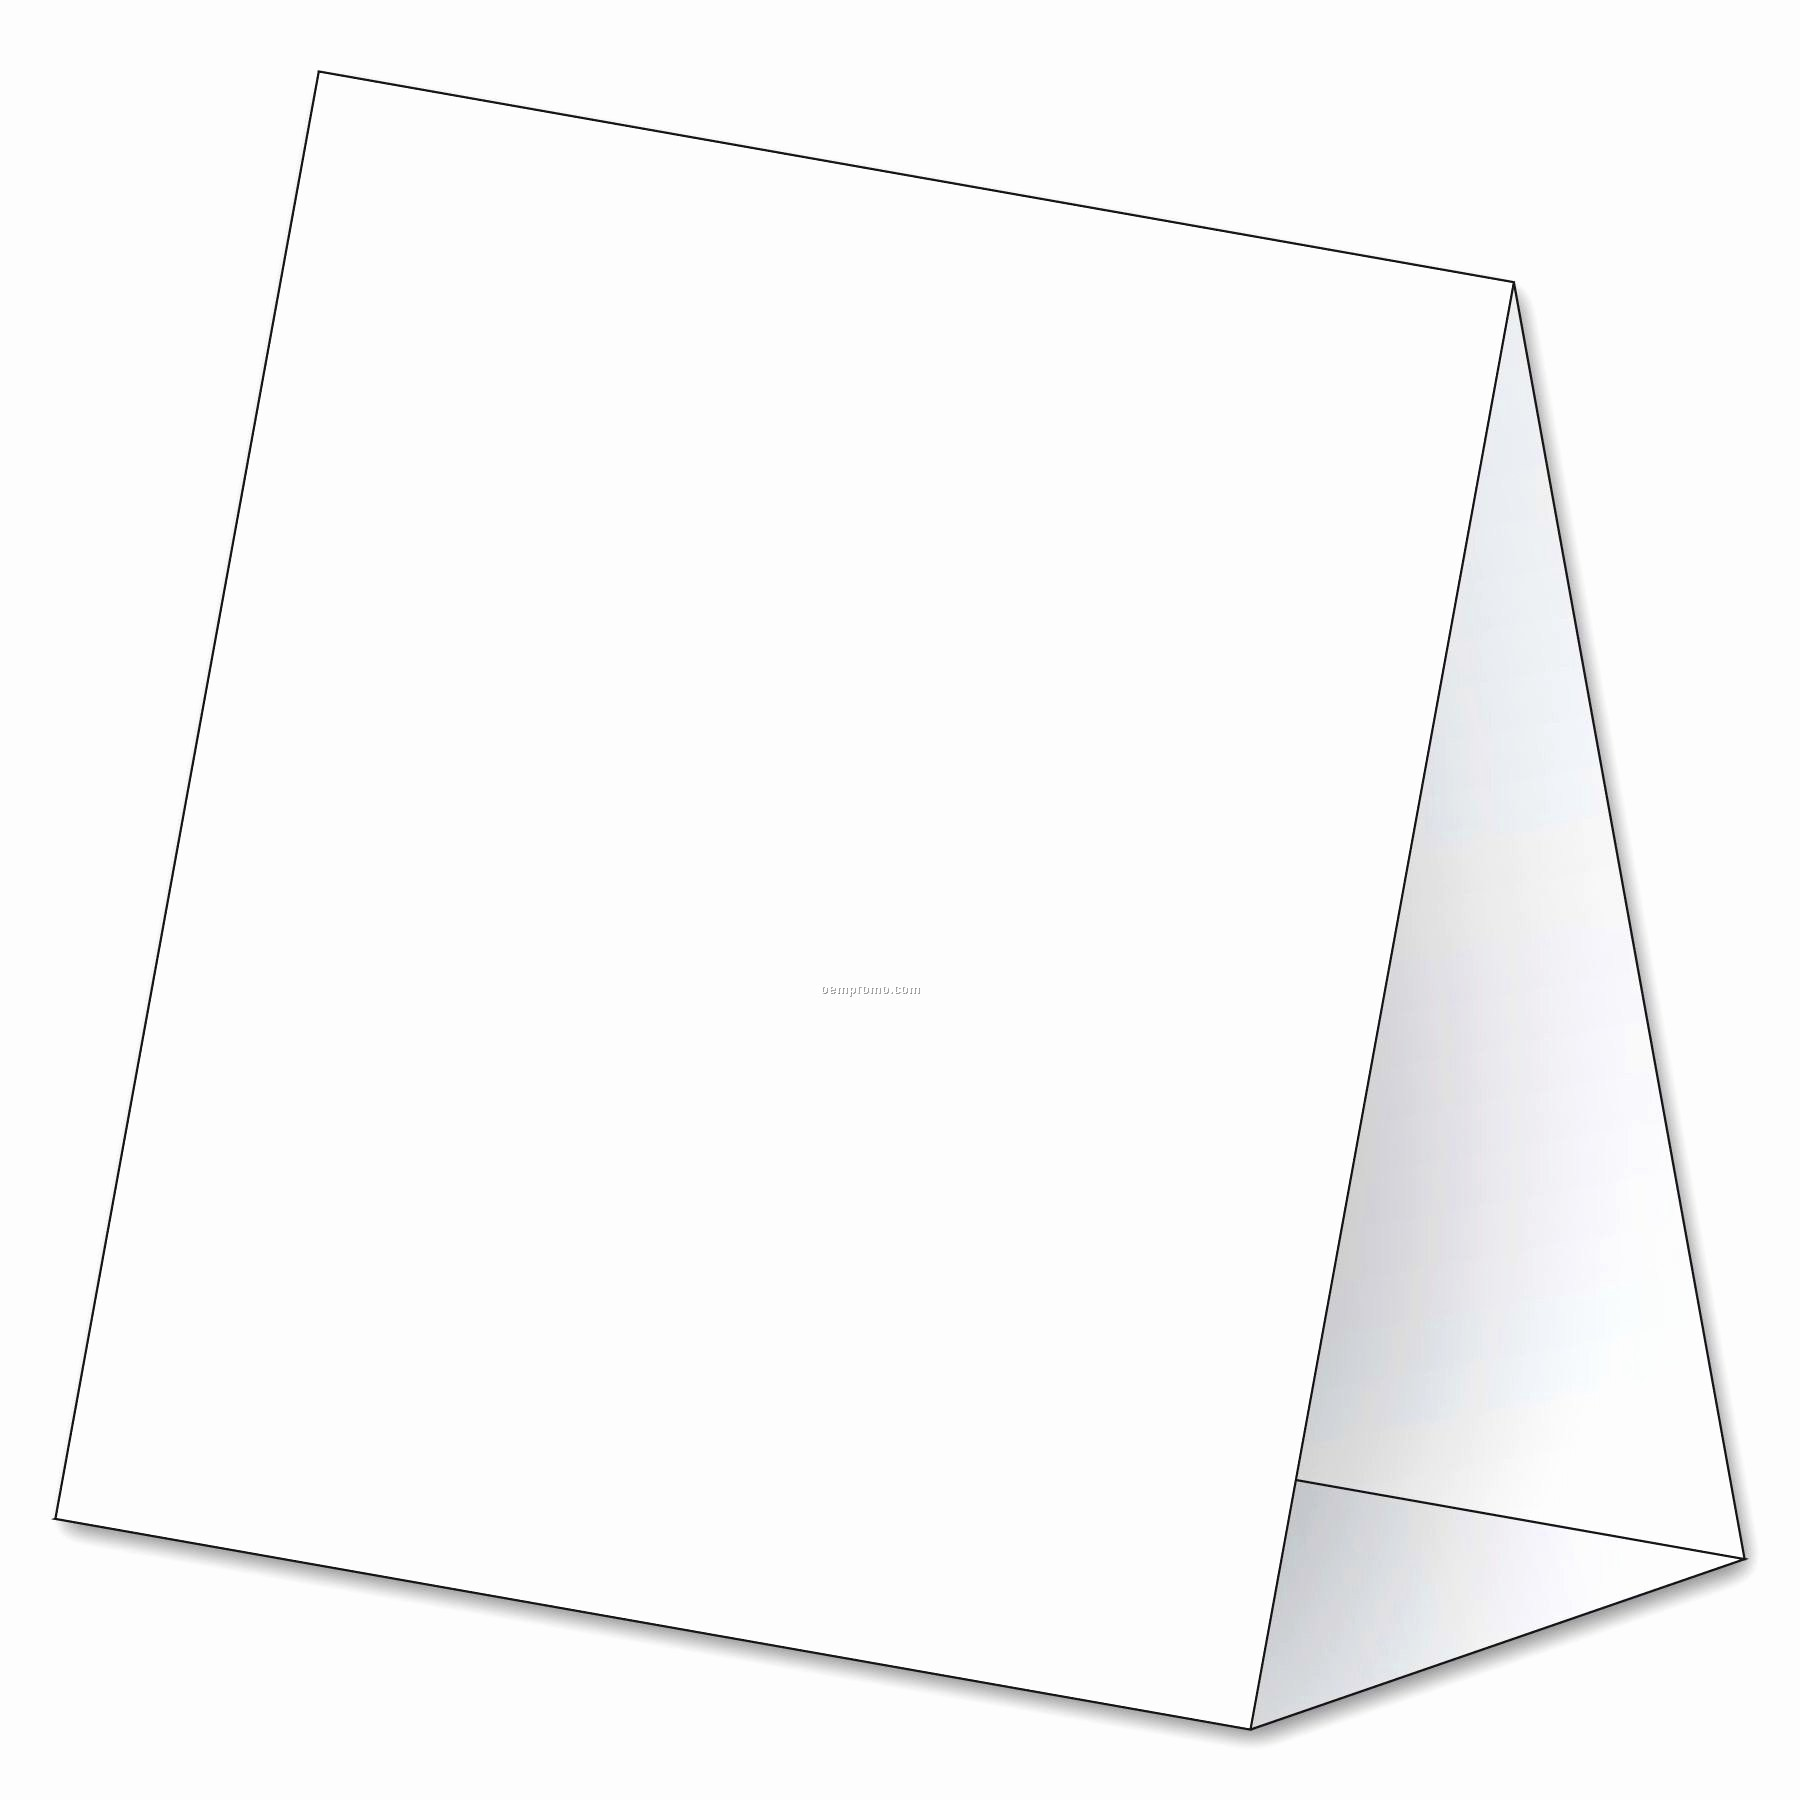 Printing Tent Cards In Word New Table Tent Template Word Beepmunk